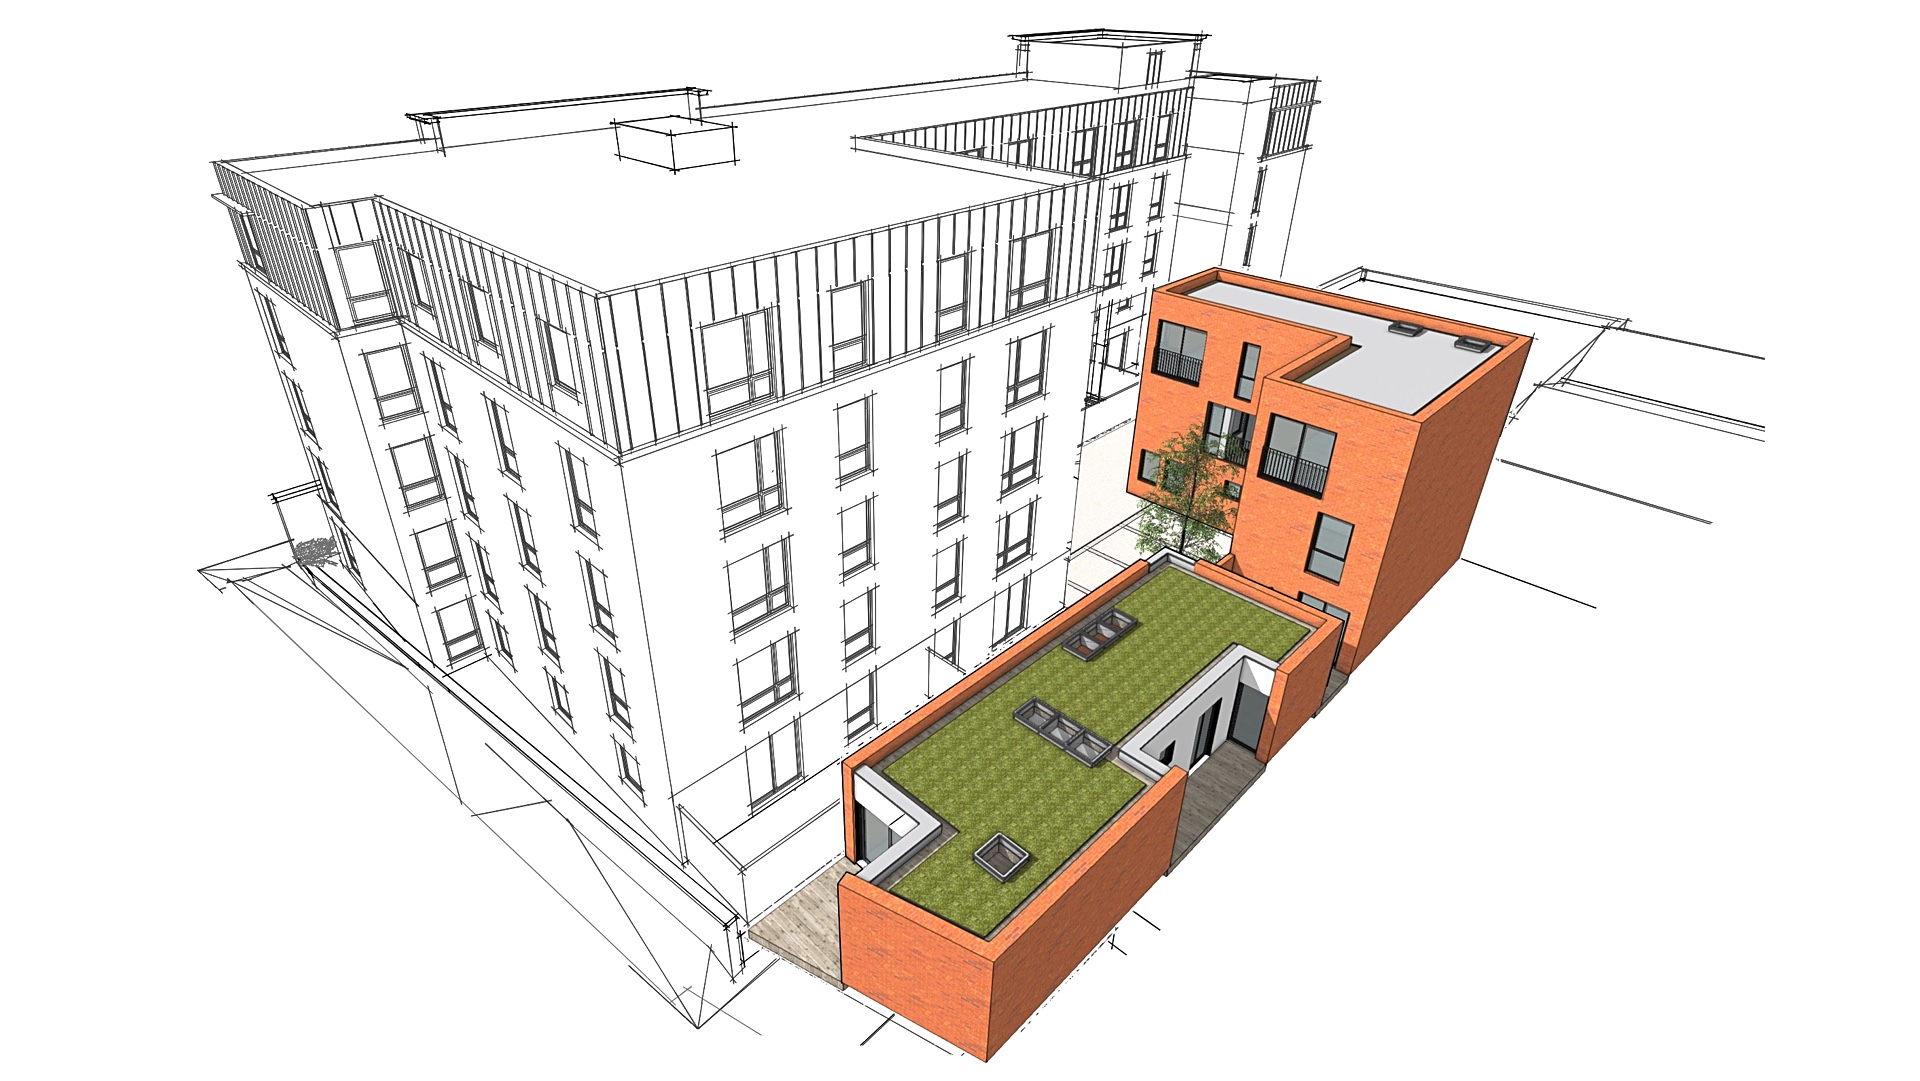 Planning application for new mews houses in Bristol